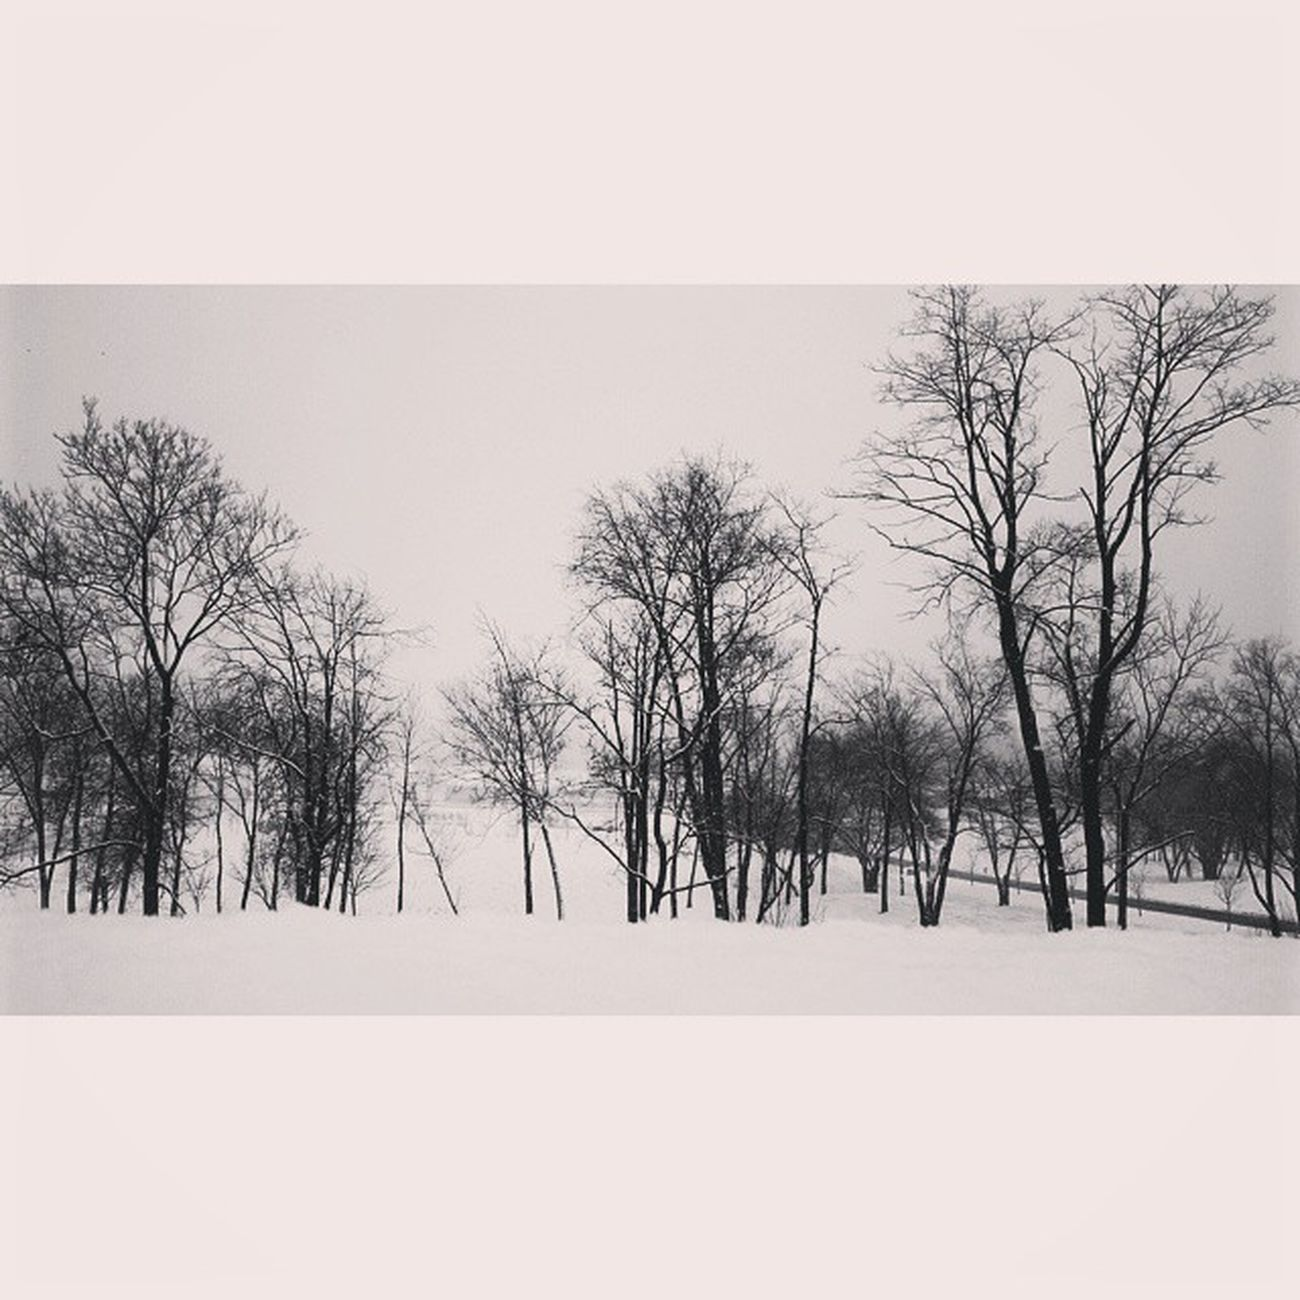 Taking a walk on snow can heal the soul. Blackandwhite Bnw Bnw_society Snow Westerville Ohio Insta_bw